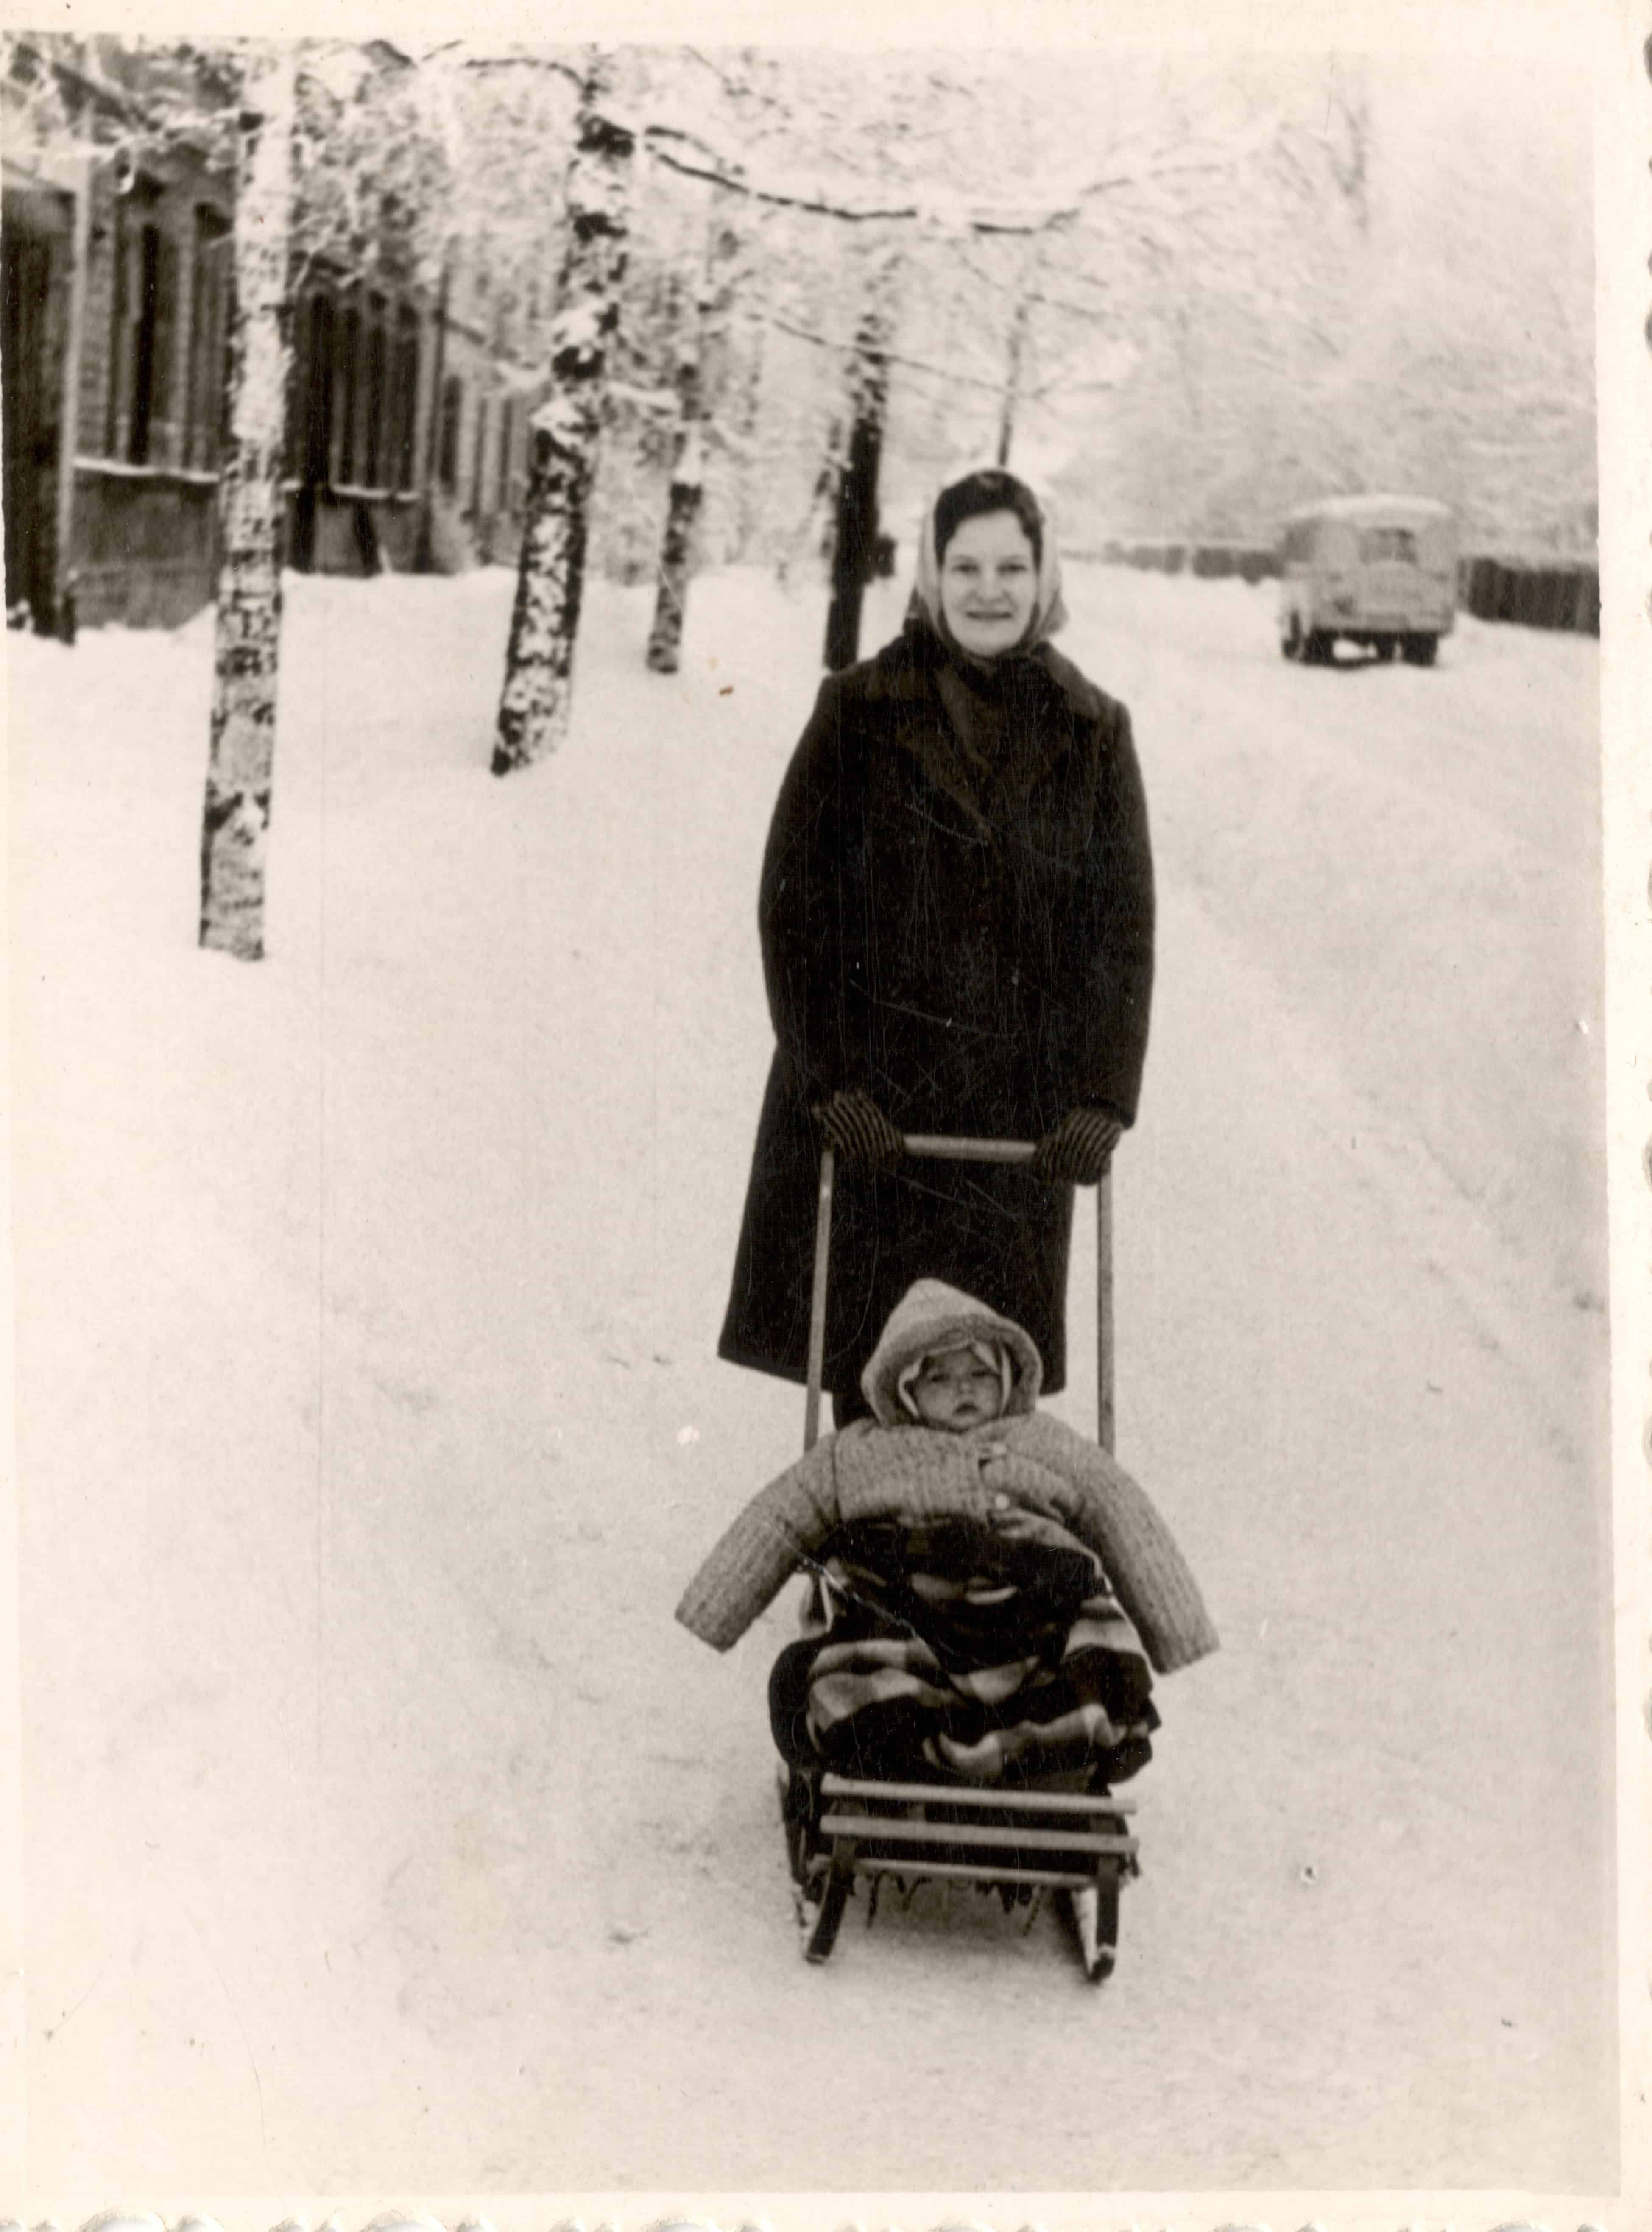 Sandra Martinsone with Mom, Olive Street 1967-1968. in the winter